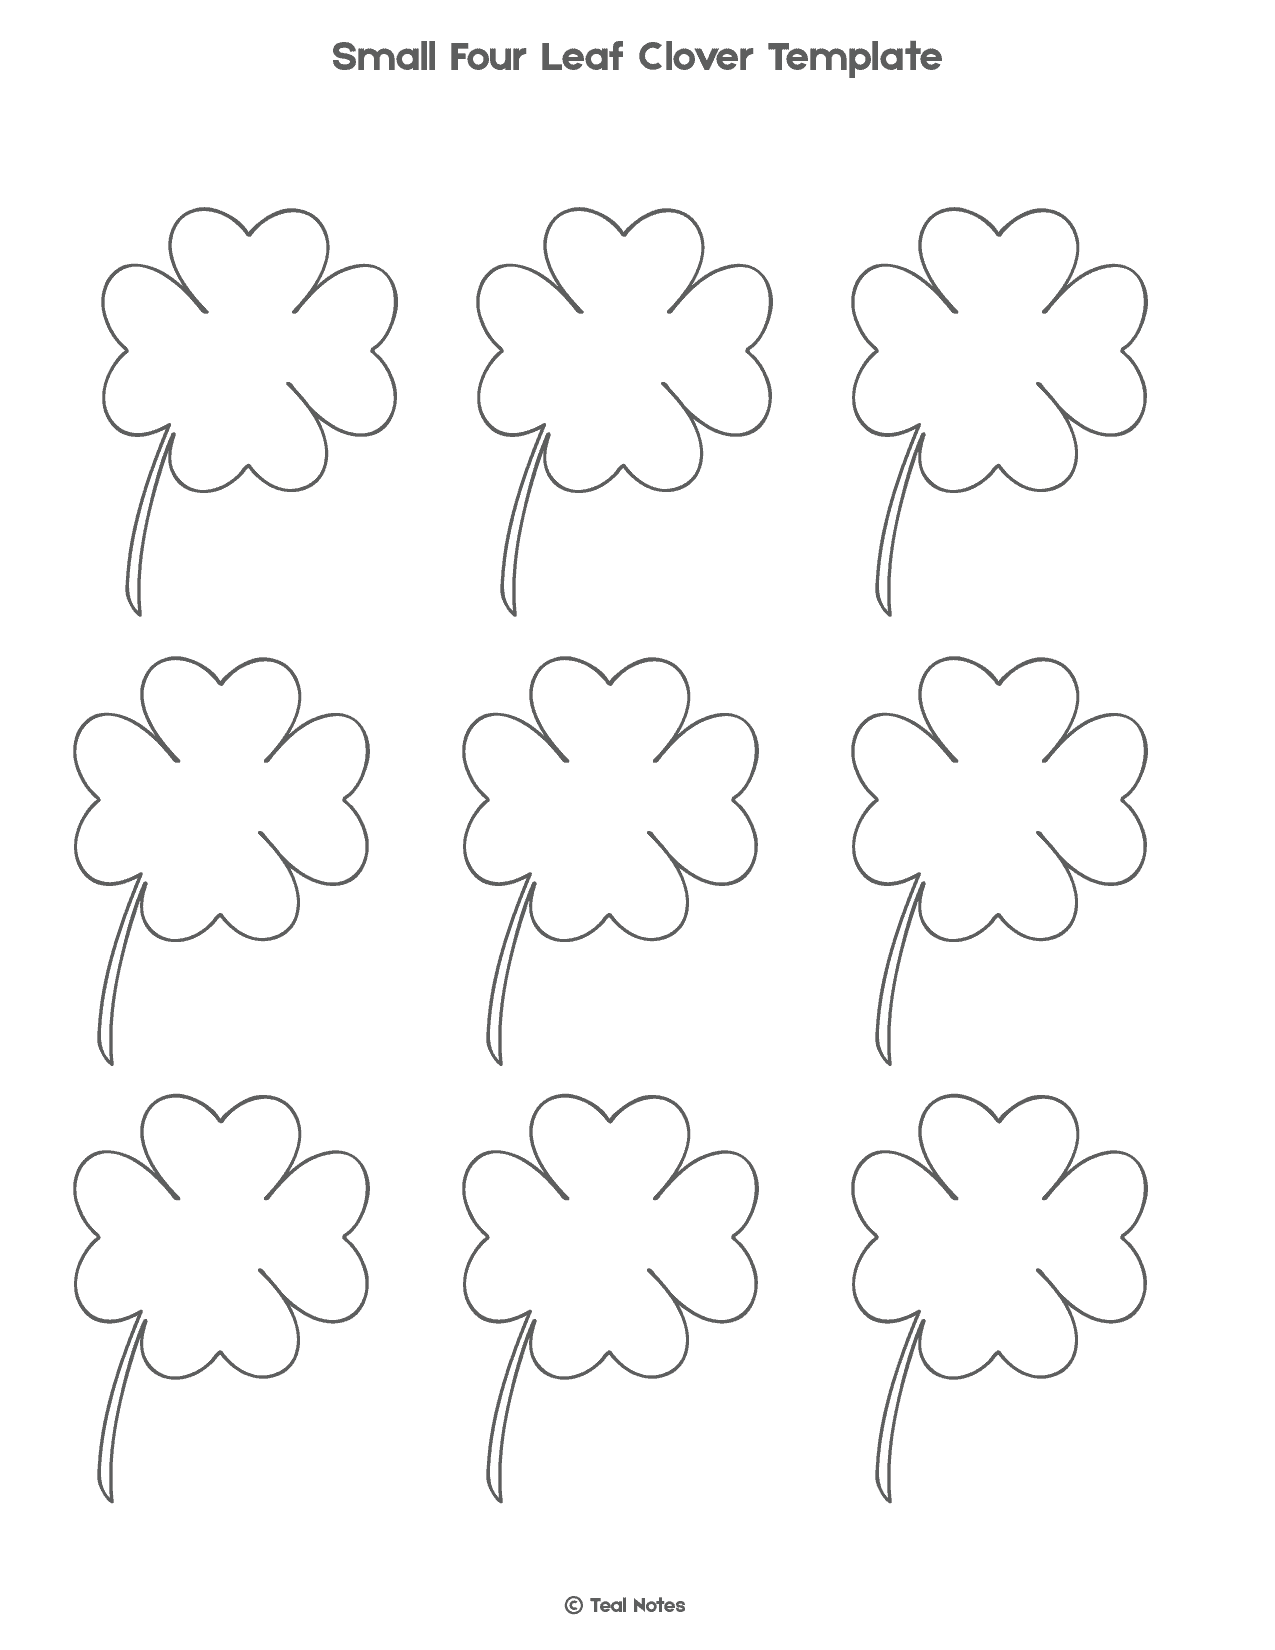 graphic about 4 Leaf Clover Printable called 4 Leaf Clover Template: Absolutely free Shamrock Template Printable